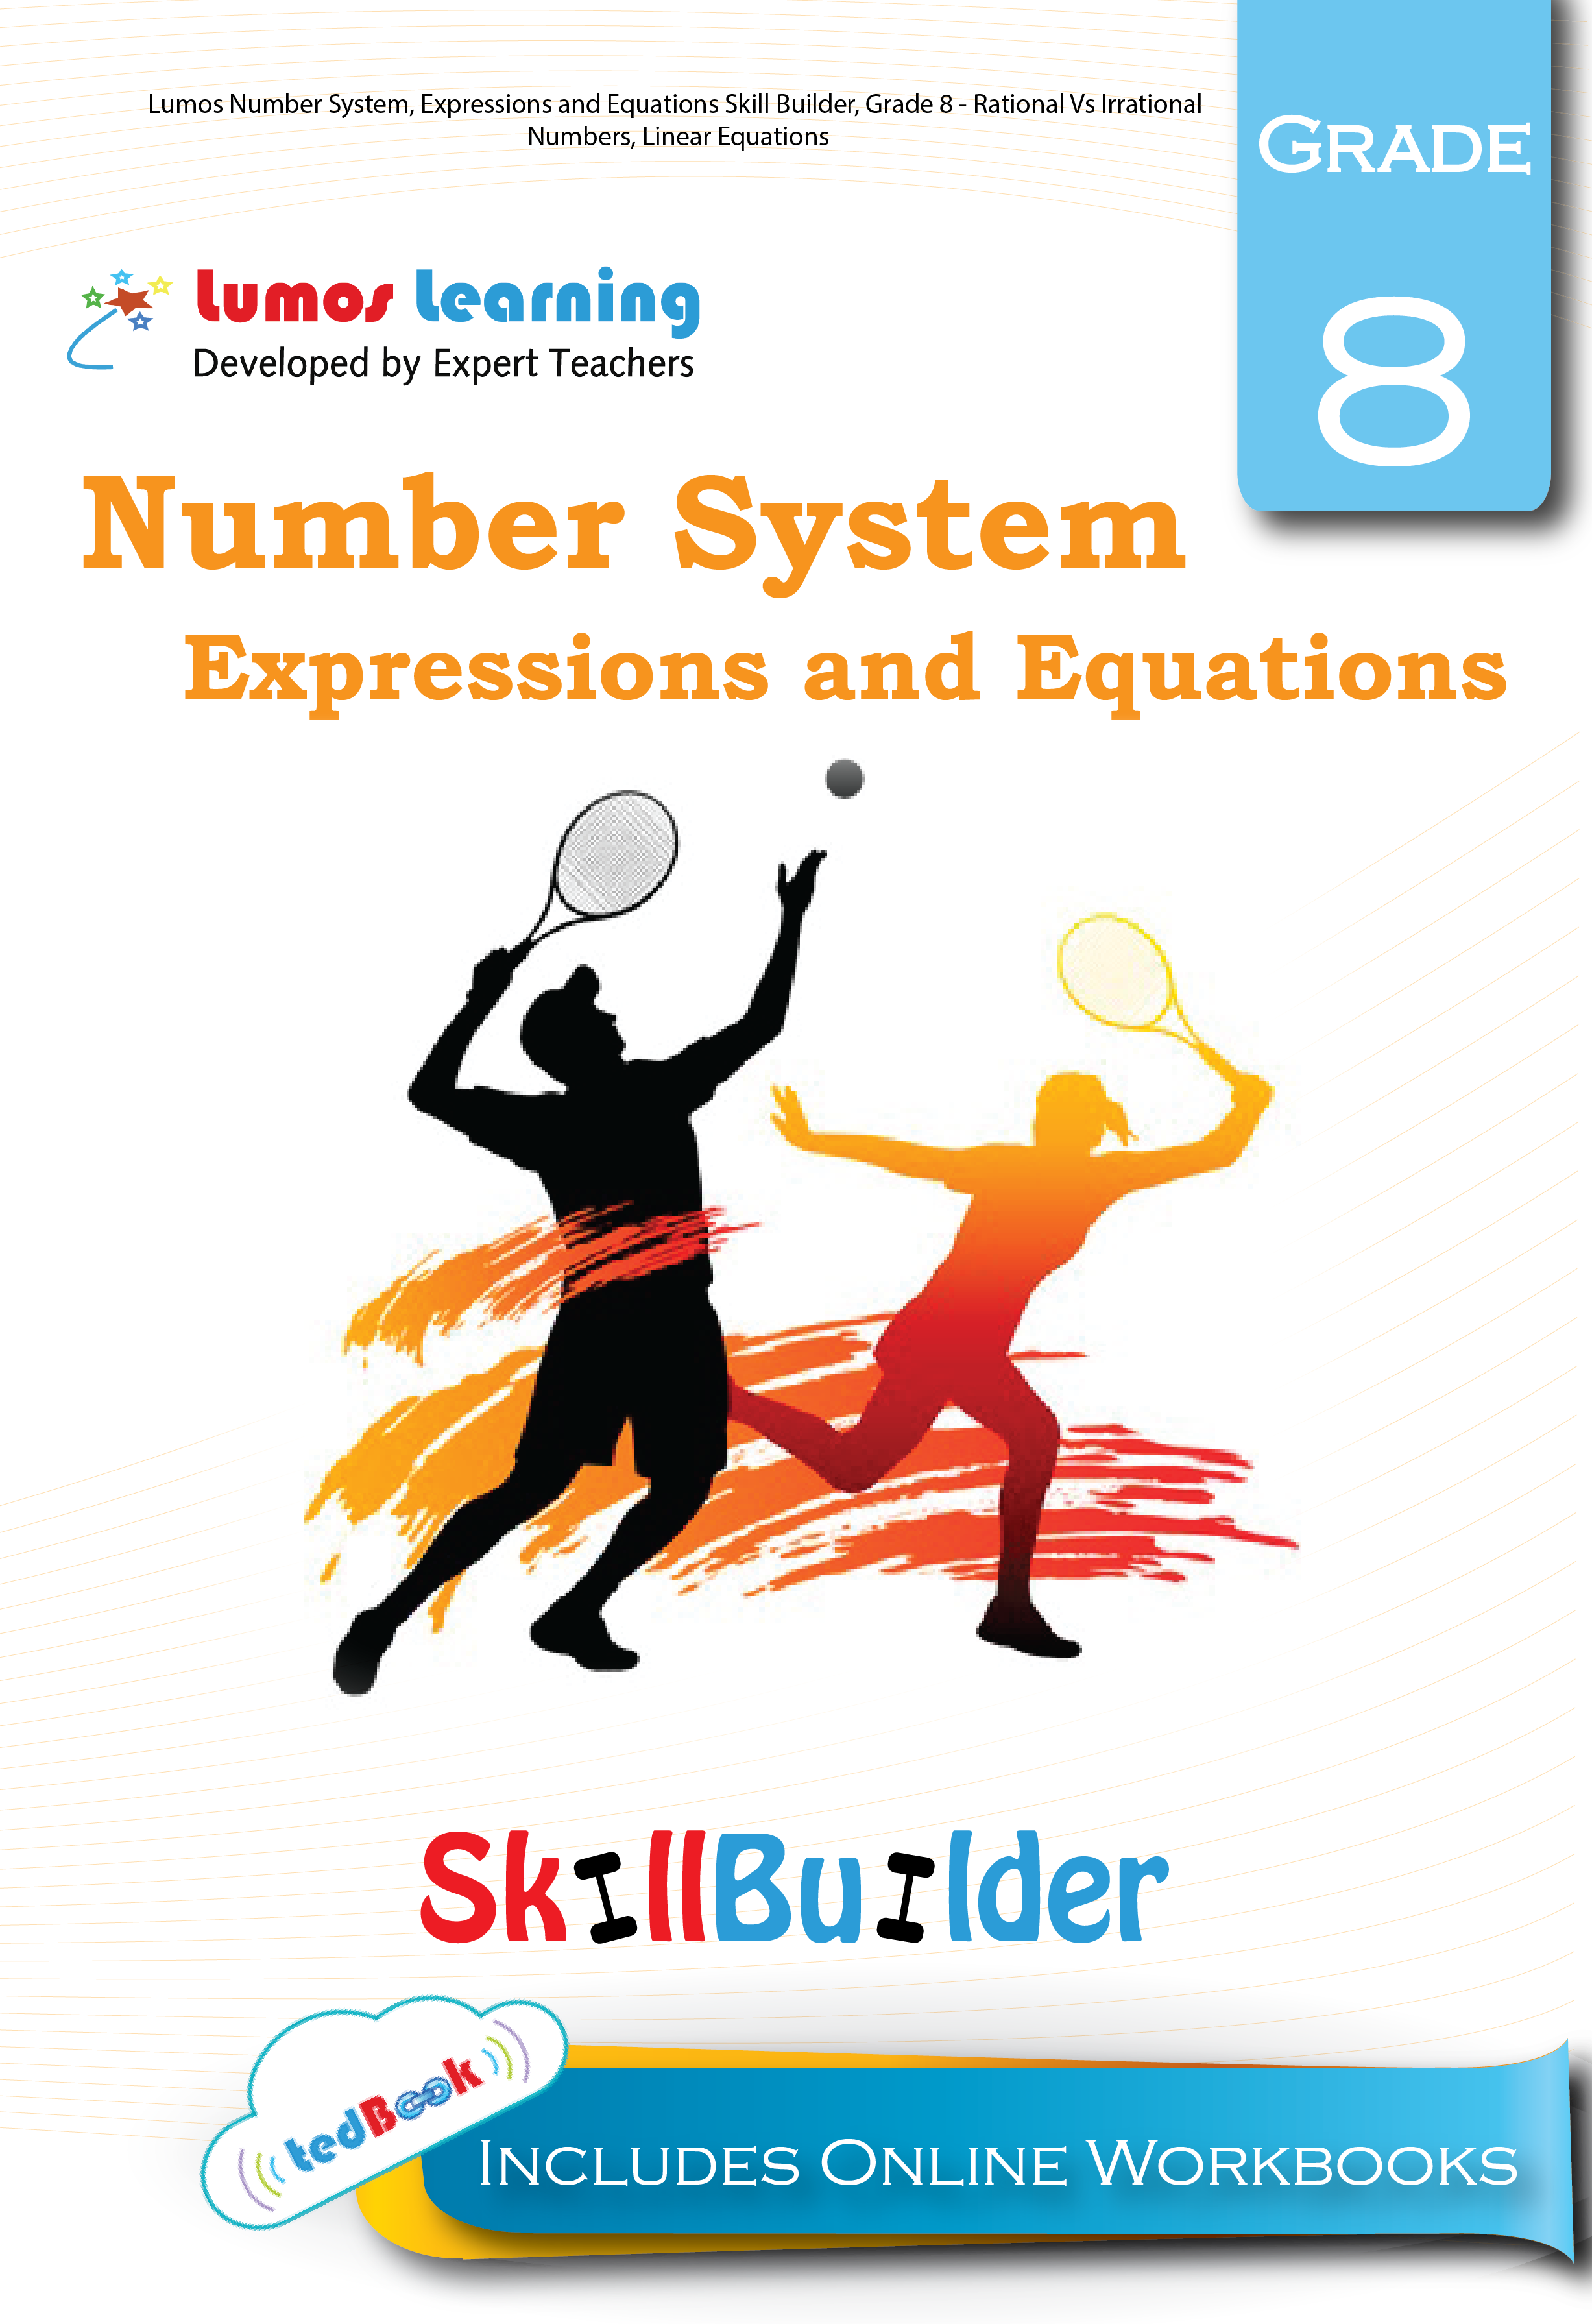 Expressions and Equations and number system grade 8